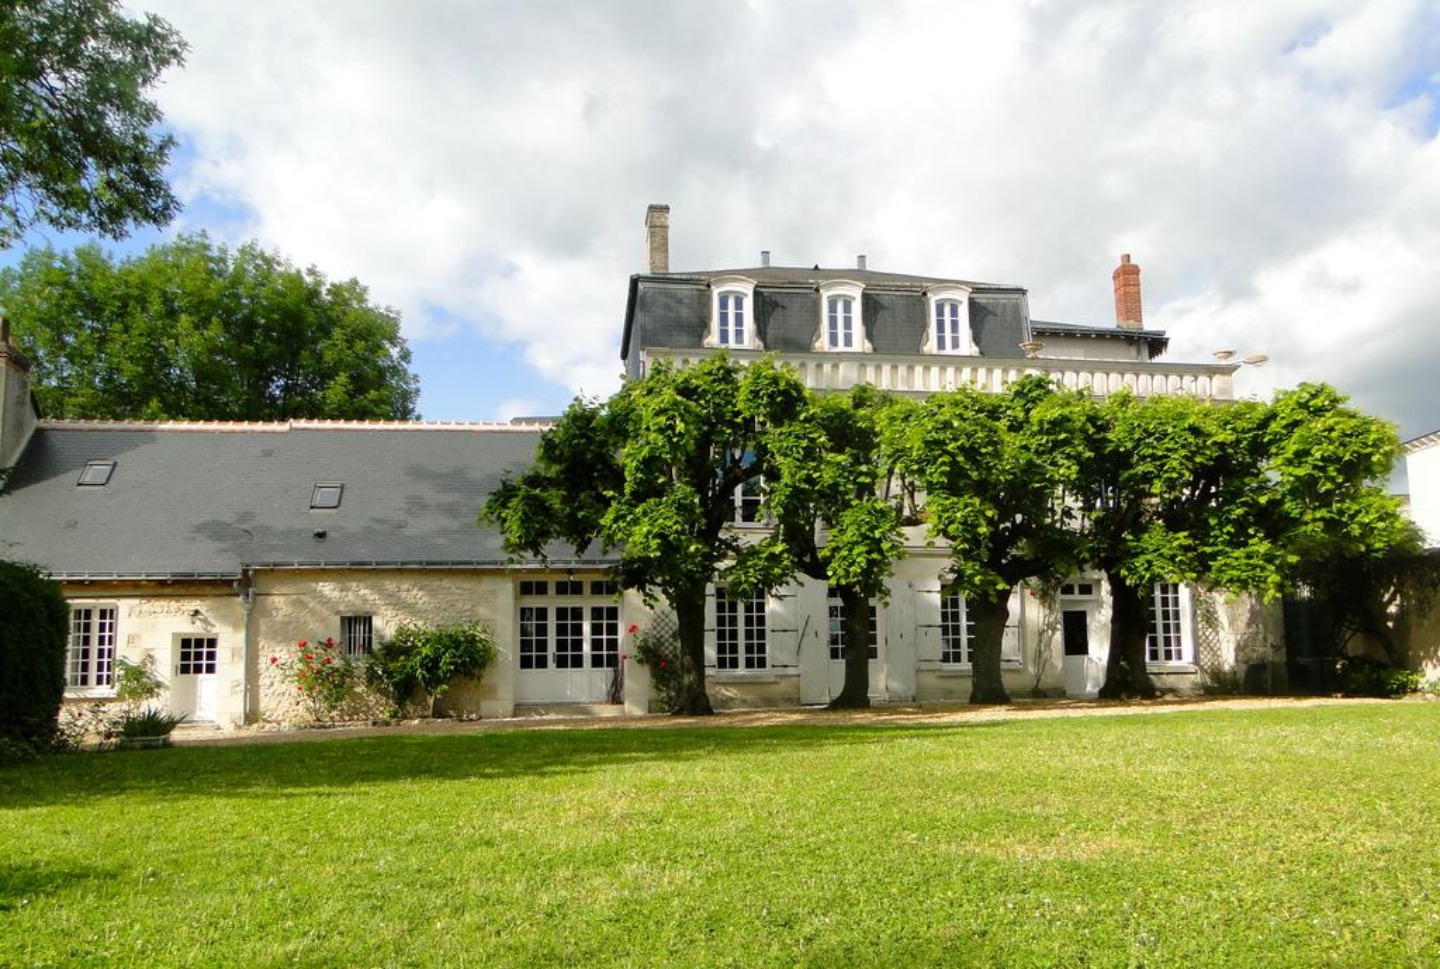 A tree in front of a house at la Héraudière.